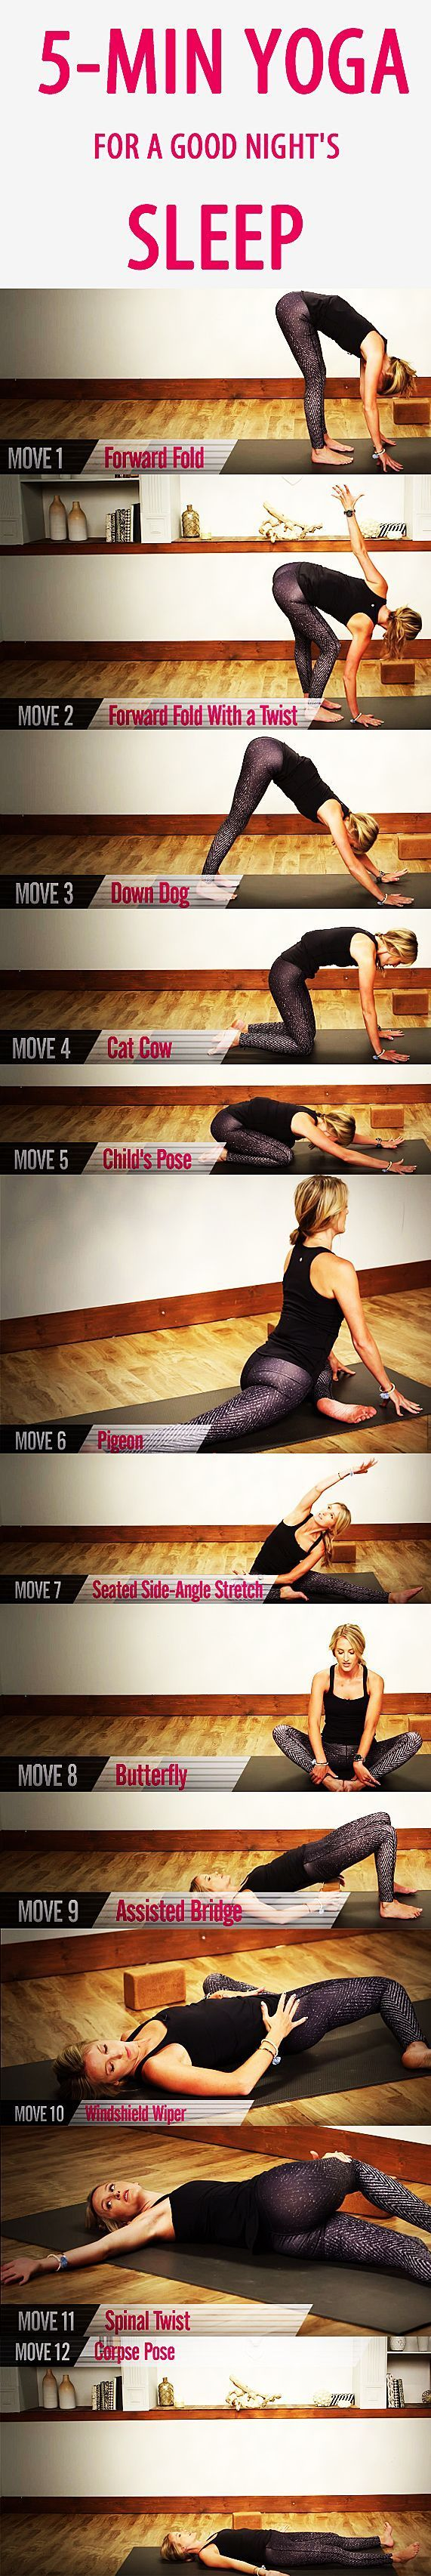 Equestrians & Everyone! Here's a 5 minute Yoga routine for a great night's sleep. Sometimes you have to actively unwind to truly rest up, and a bit of mellow Yoga could be your ticket to more restful sleep. This 5-minute sequence is designed to relax your body and quiet your mind so you can drift off easily into a restful, body/mind repairing sleep. It really works! Restful sleeping!